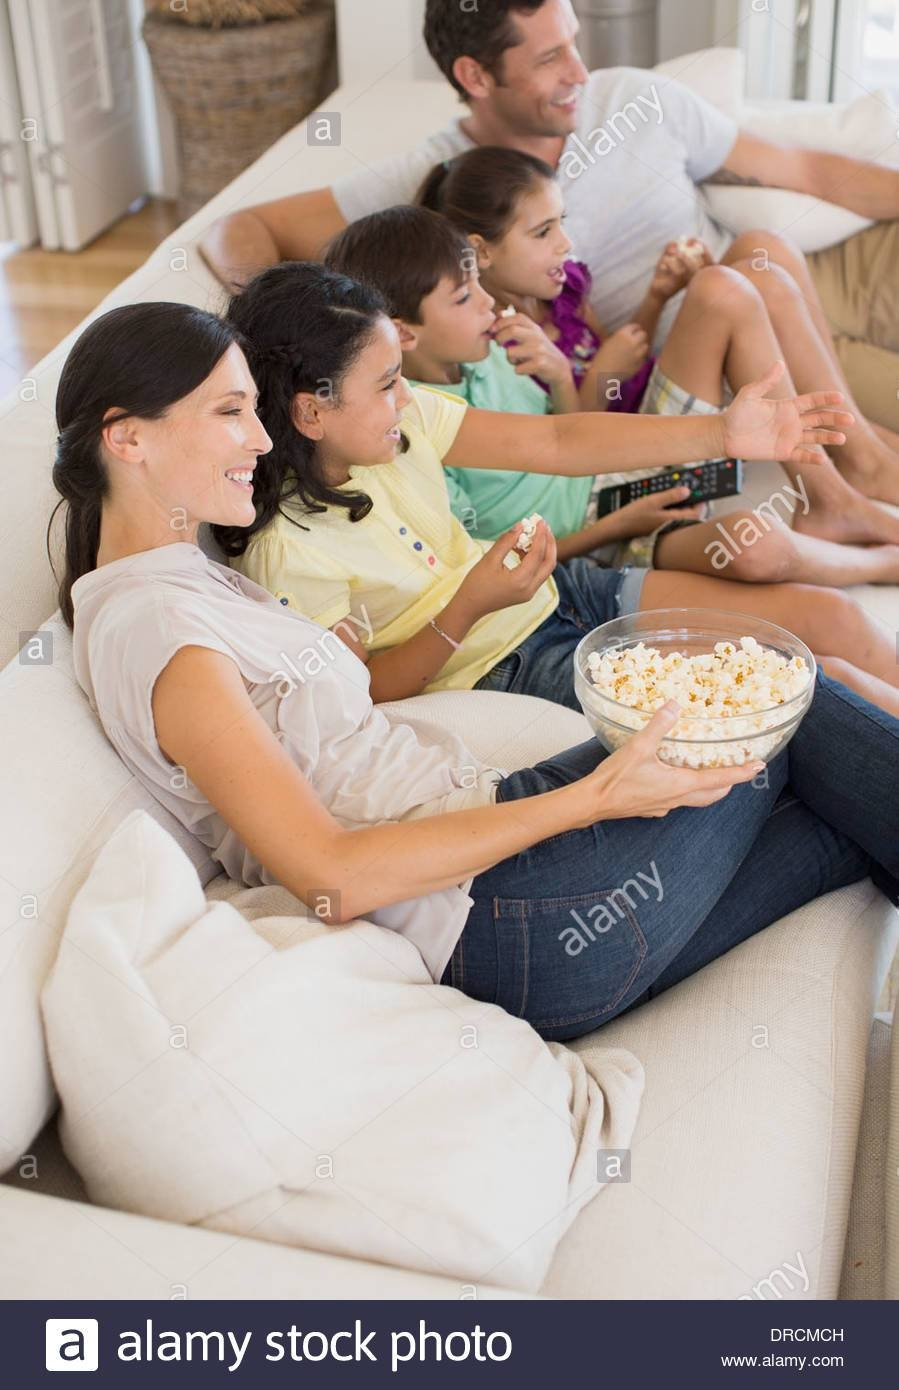 Family Watching Movie On Sofa In Living Room Stock Photo, Royalty intended for Family Sofa (Image 15 of 30)